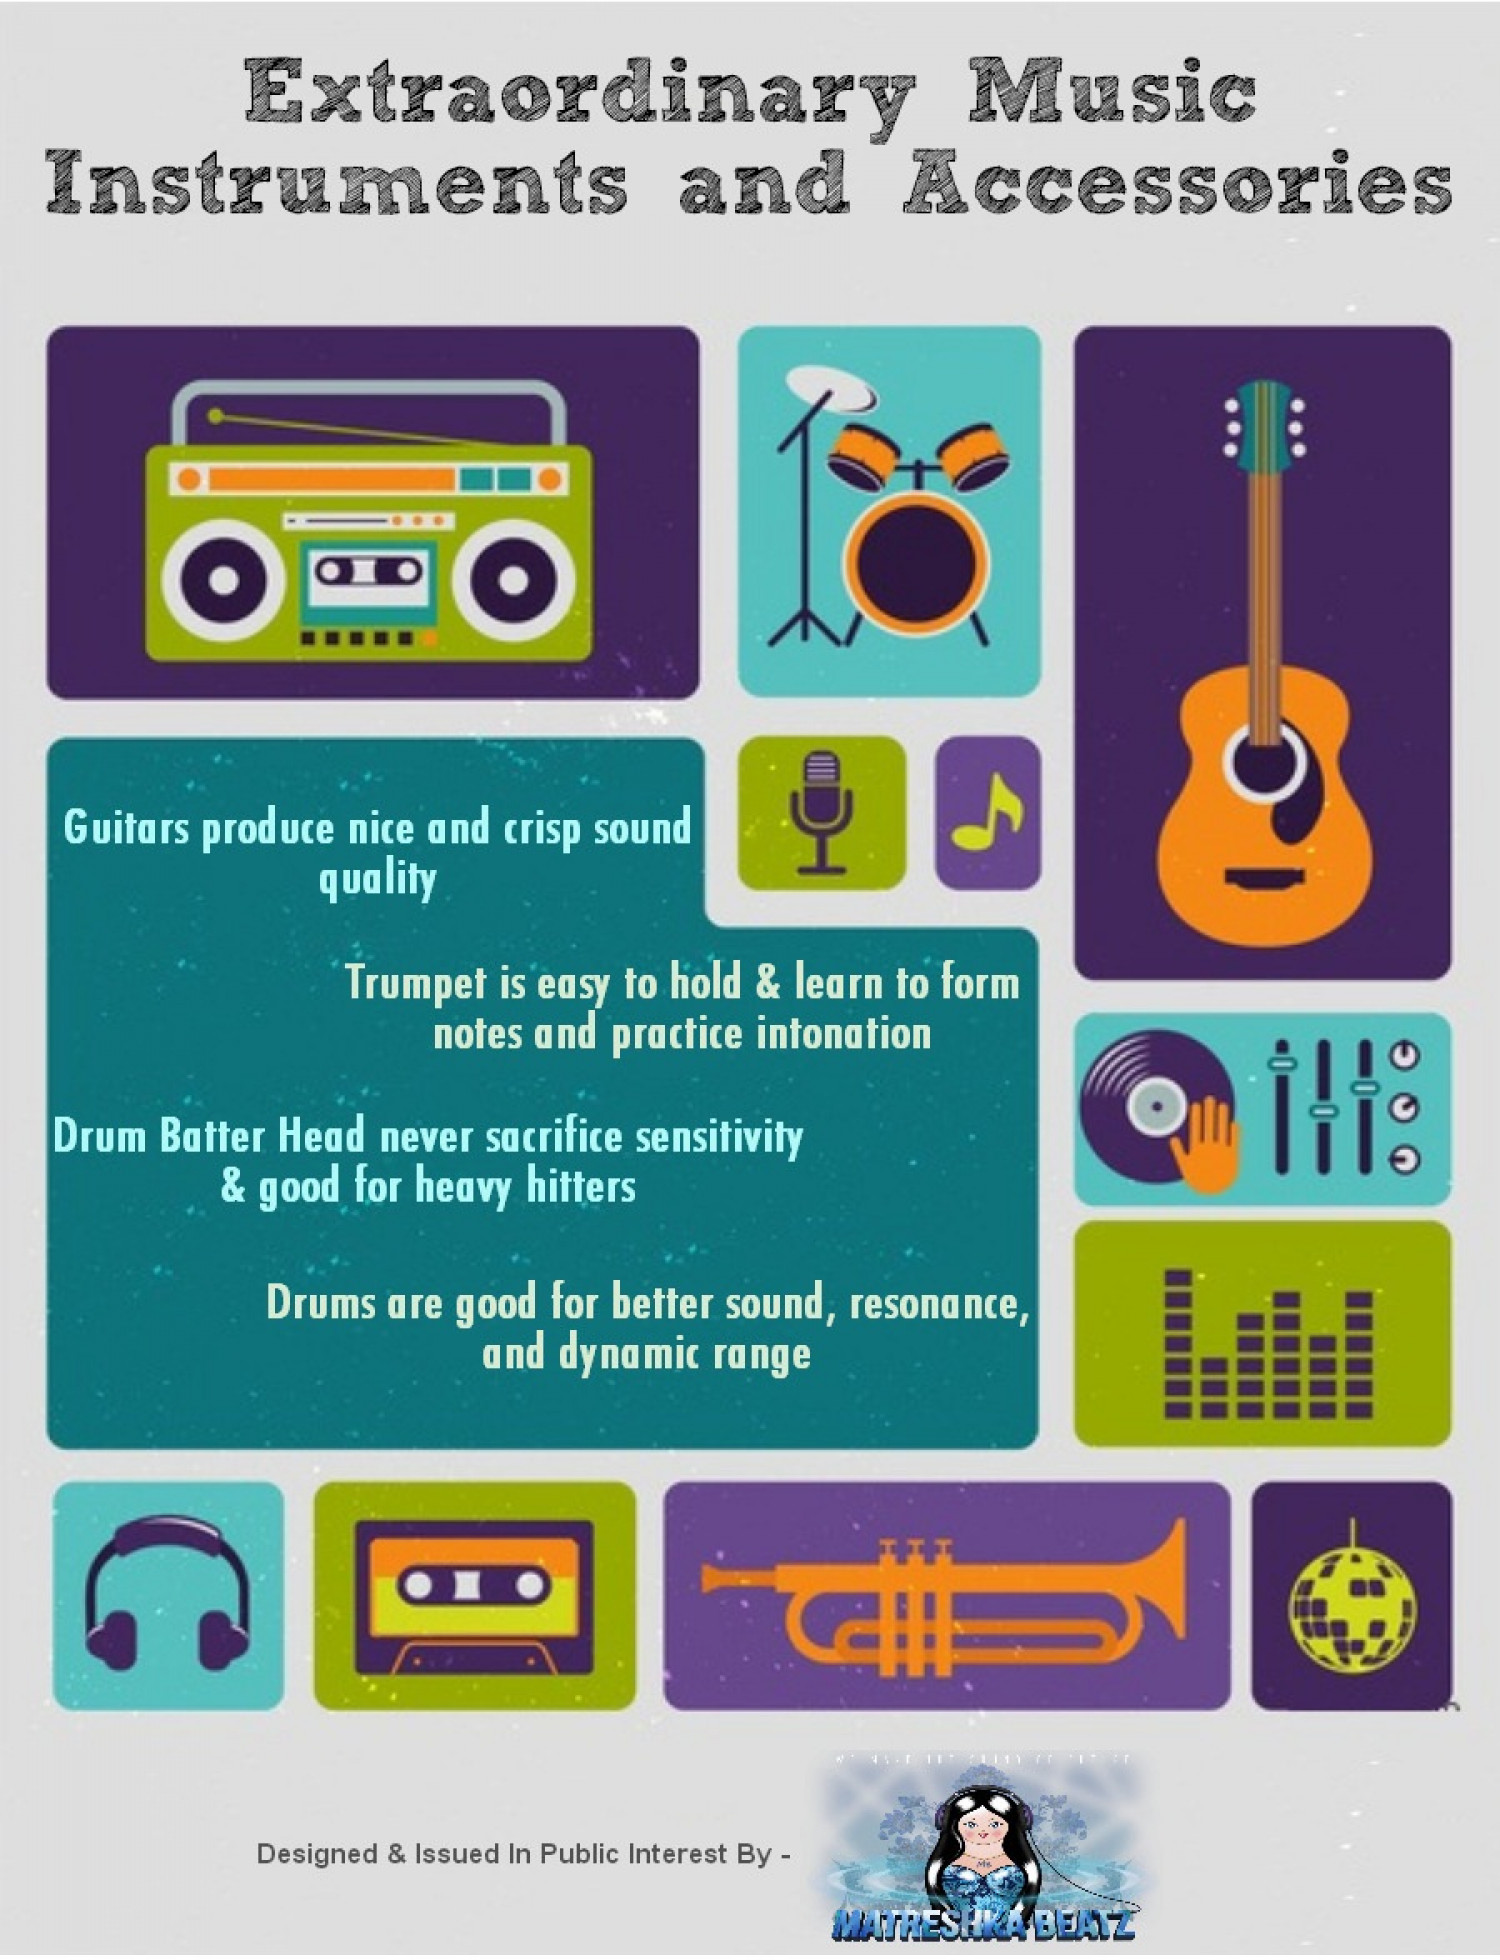 Extraordinary Music Instruments and Accessories Infographic